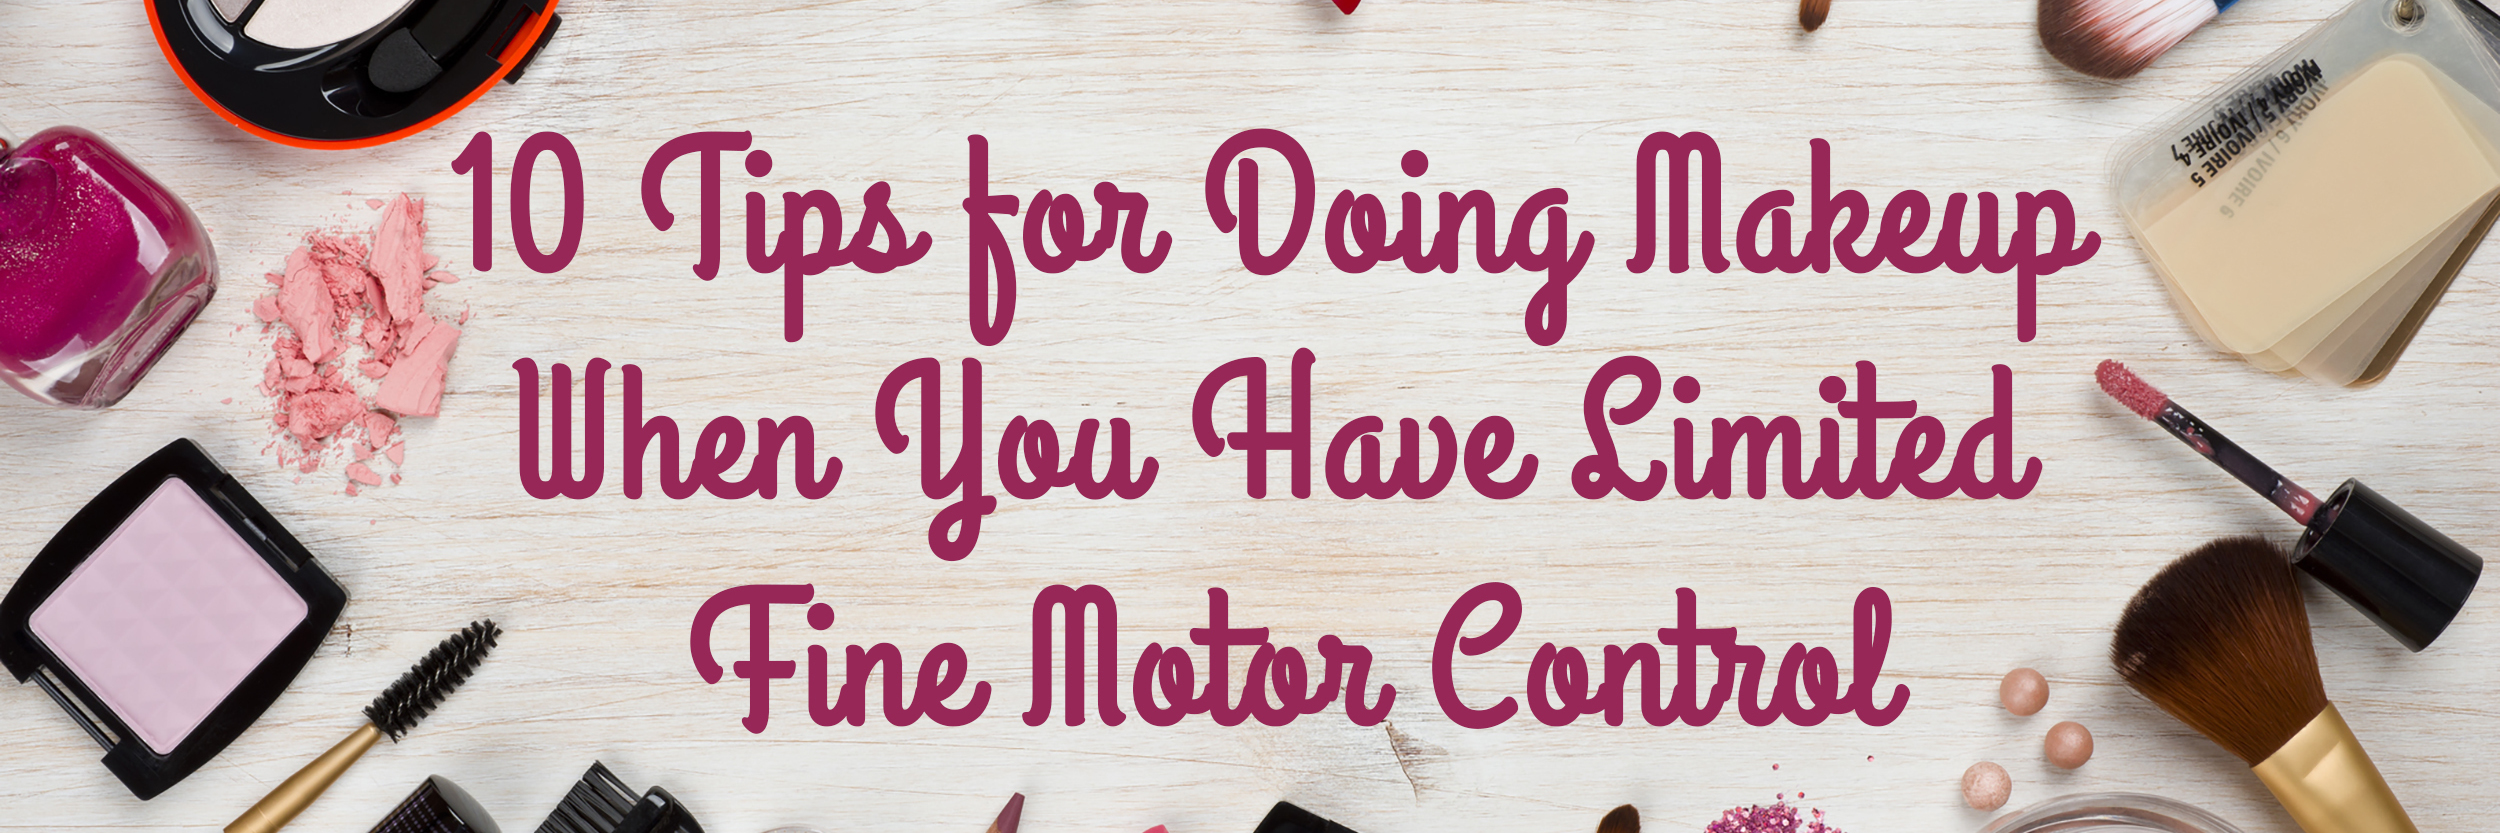 10 Tips for Doing Makeup When You Have Limited Fine Motor Control